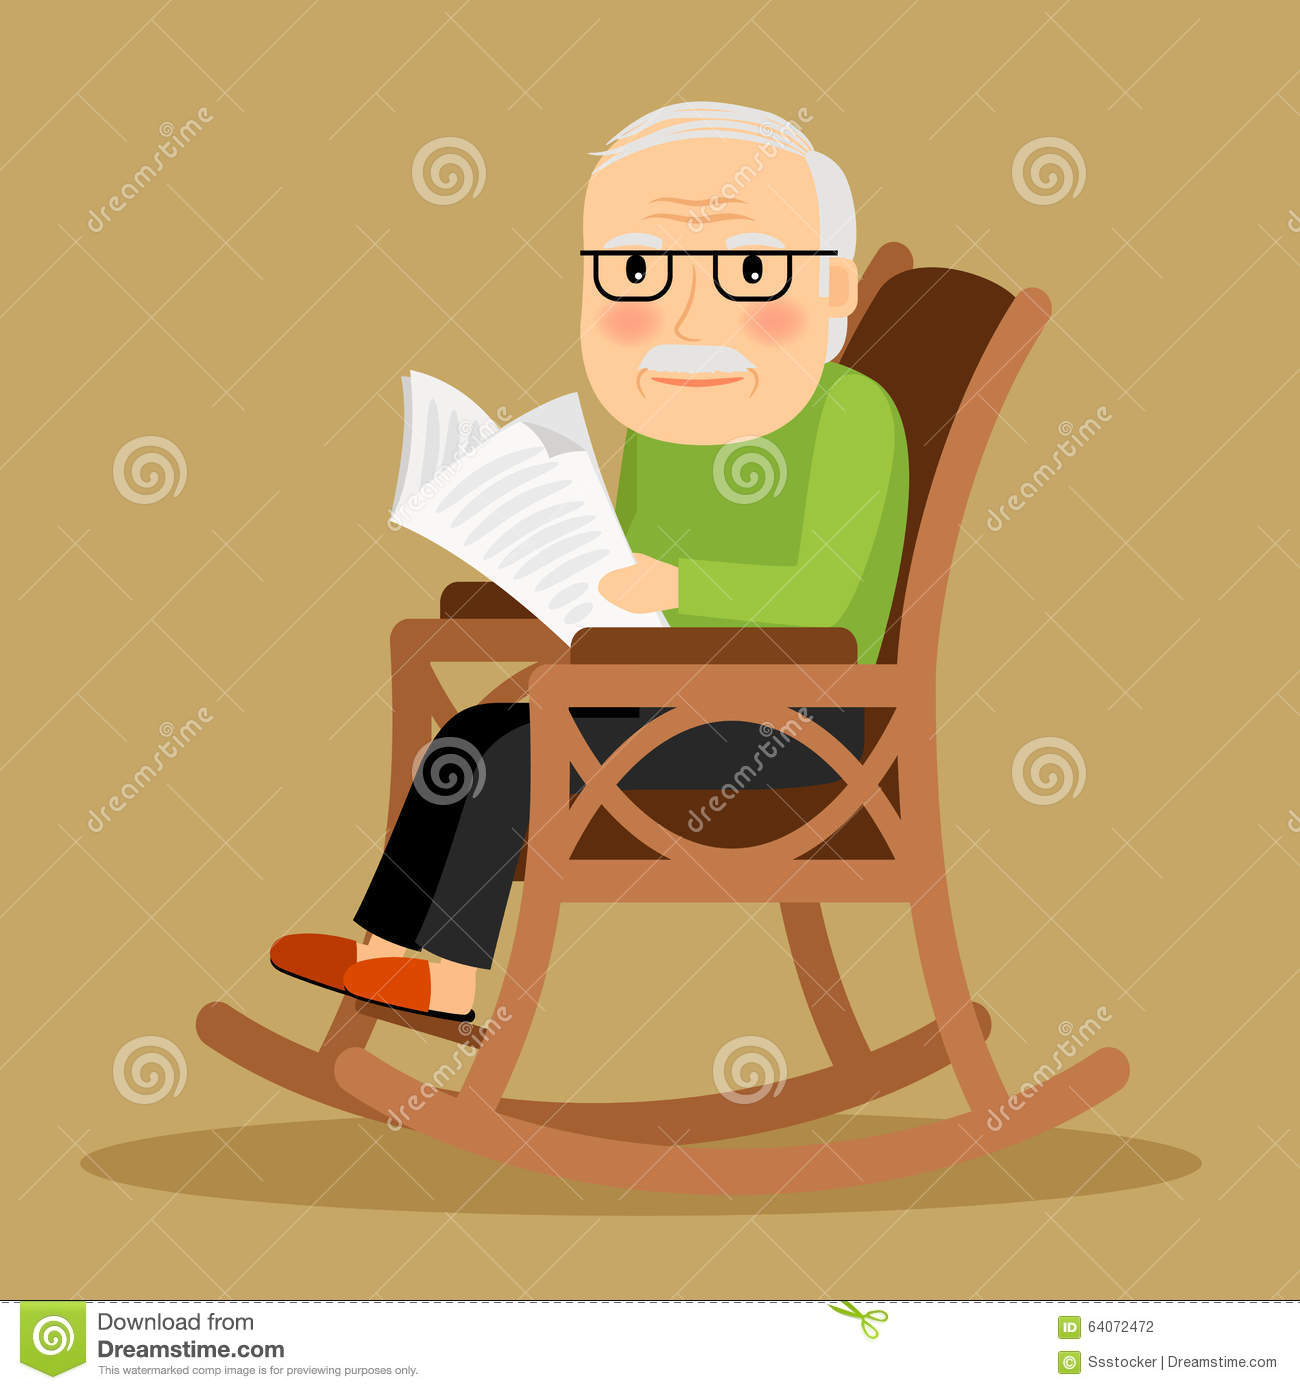 Old Man Sitting In Rocking Chair And Newspaper Stock Vector - Image ...